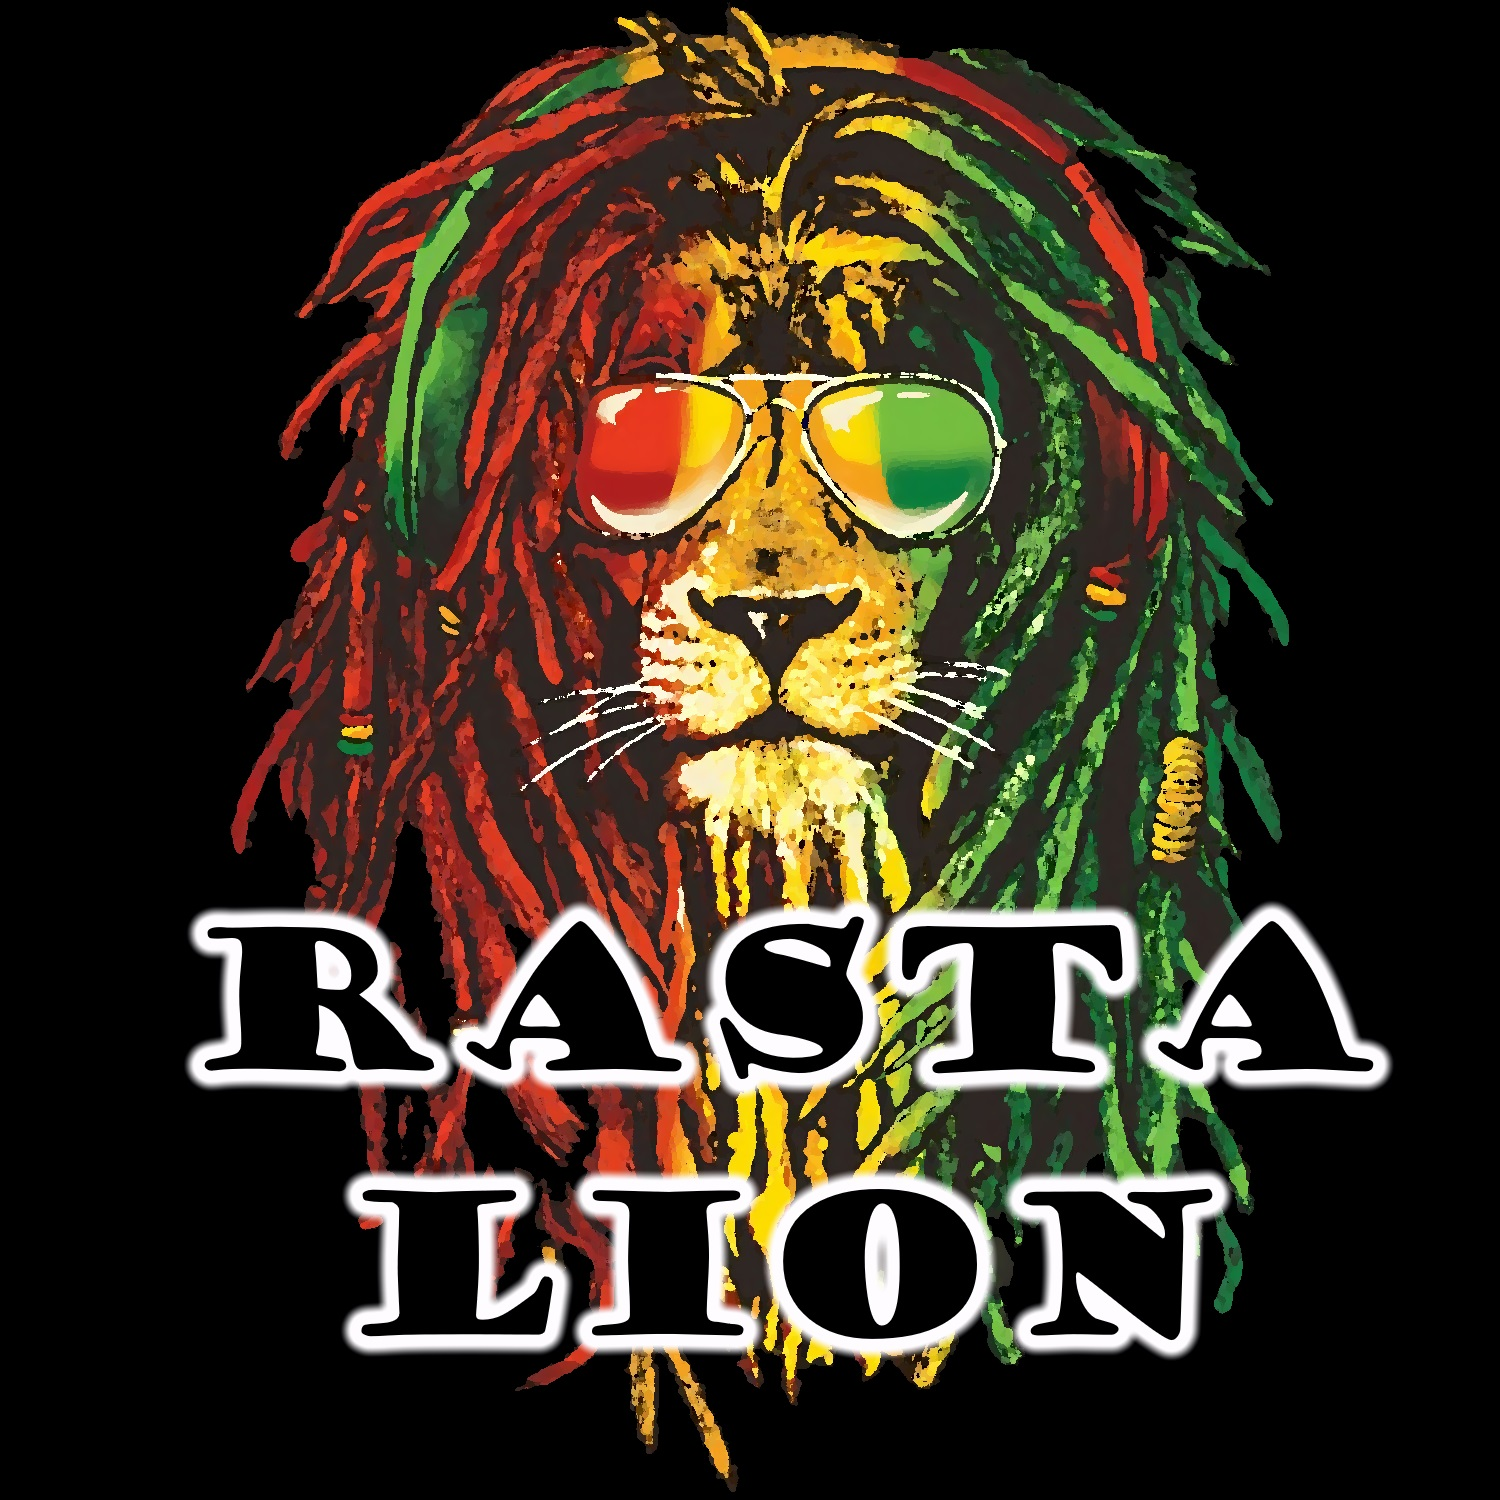 T Shirt Design Software Picture Of Rasta Wallpaper Images